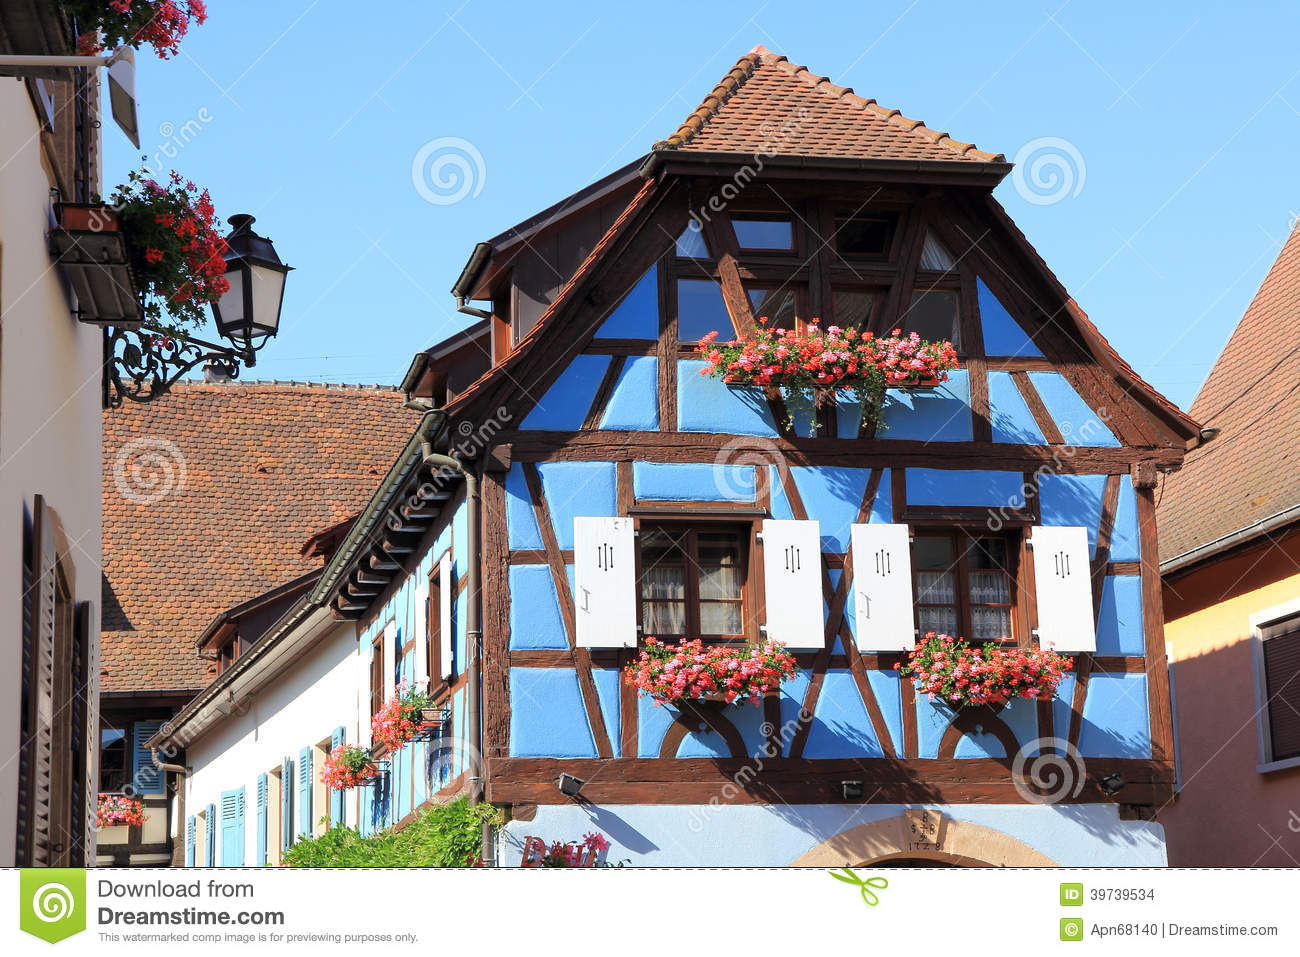 Maison colombage en alsace photo stock image du vignes - Maison a colombage alsacienne ...